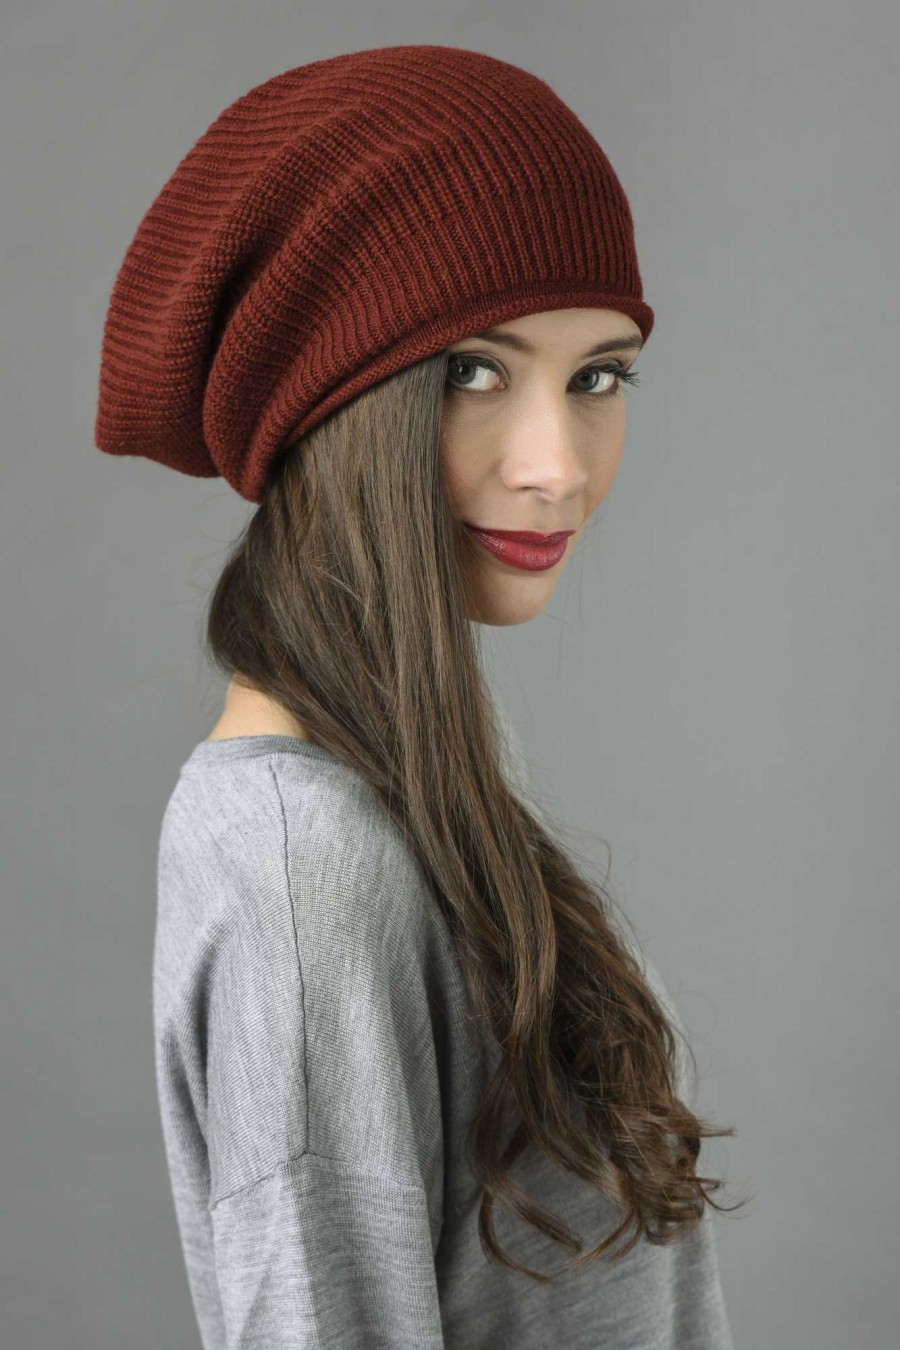 d8228d9e5 Pure Cashmere Ribbed Knitted Slouchy Beanie Hat in Bordeaux